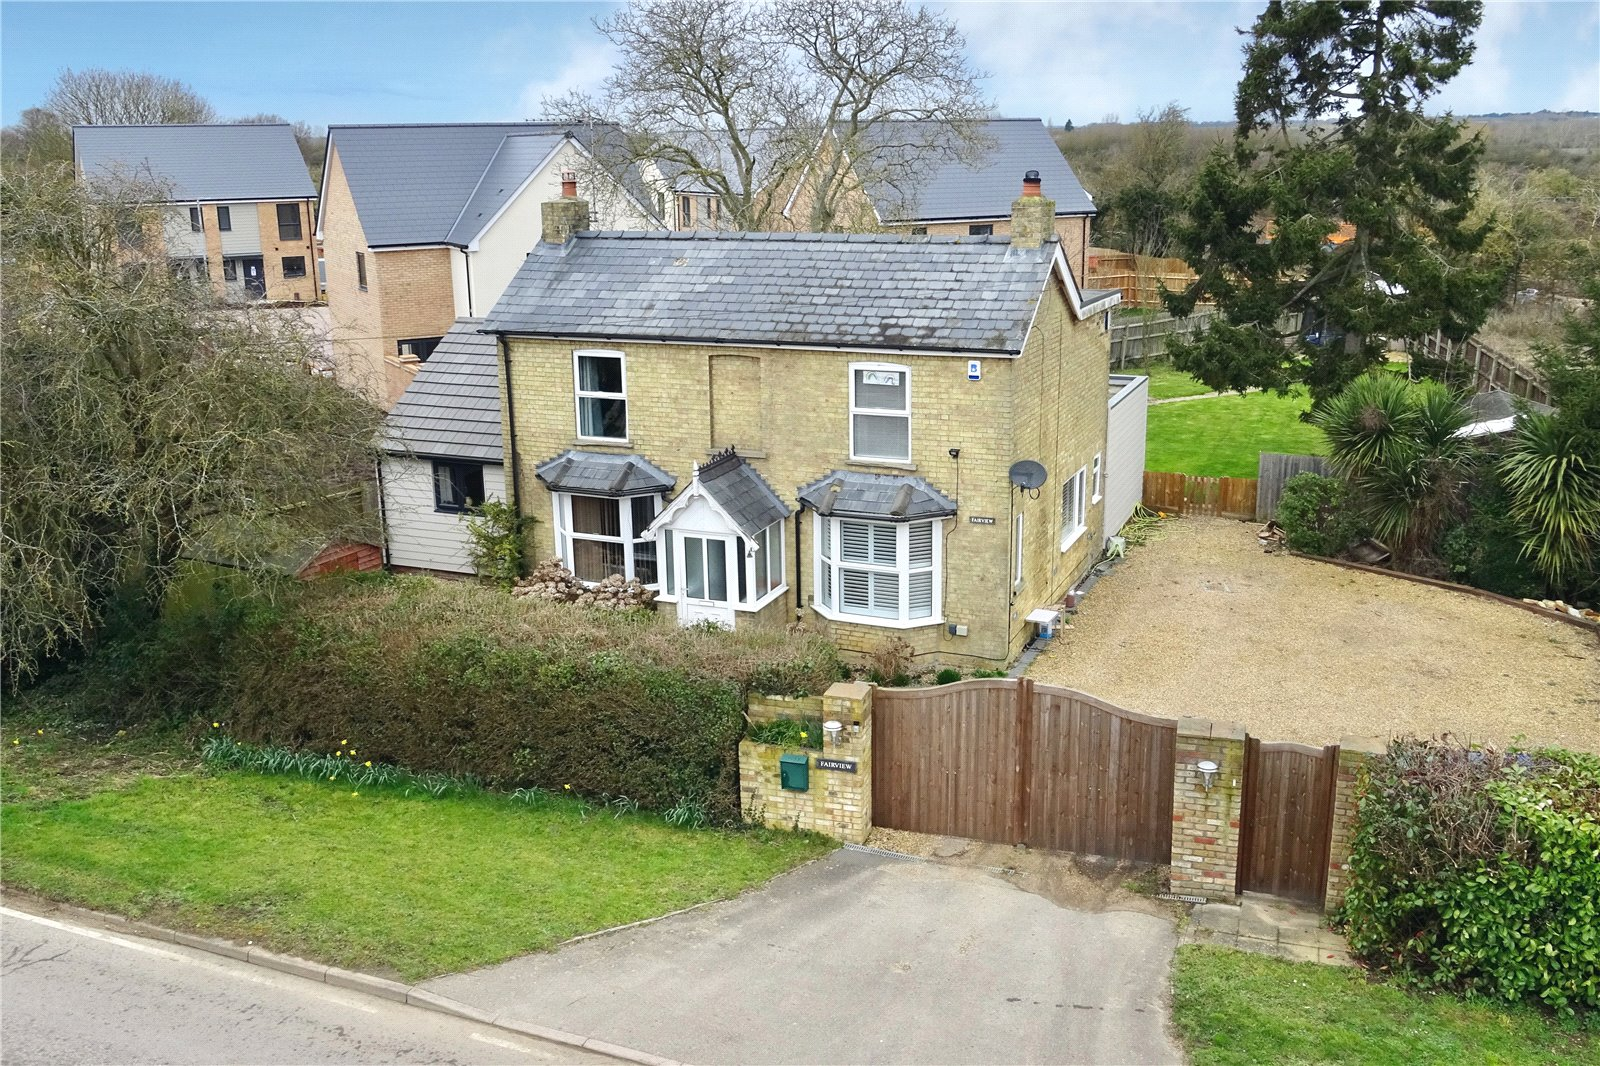 4 bed house for sale in Needingworth, PE27 4TA 0